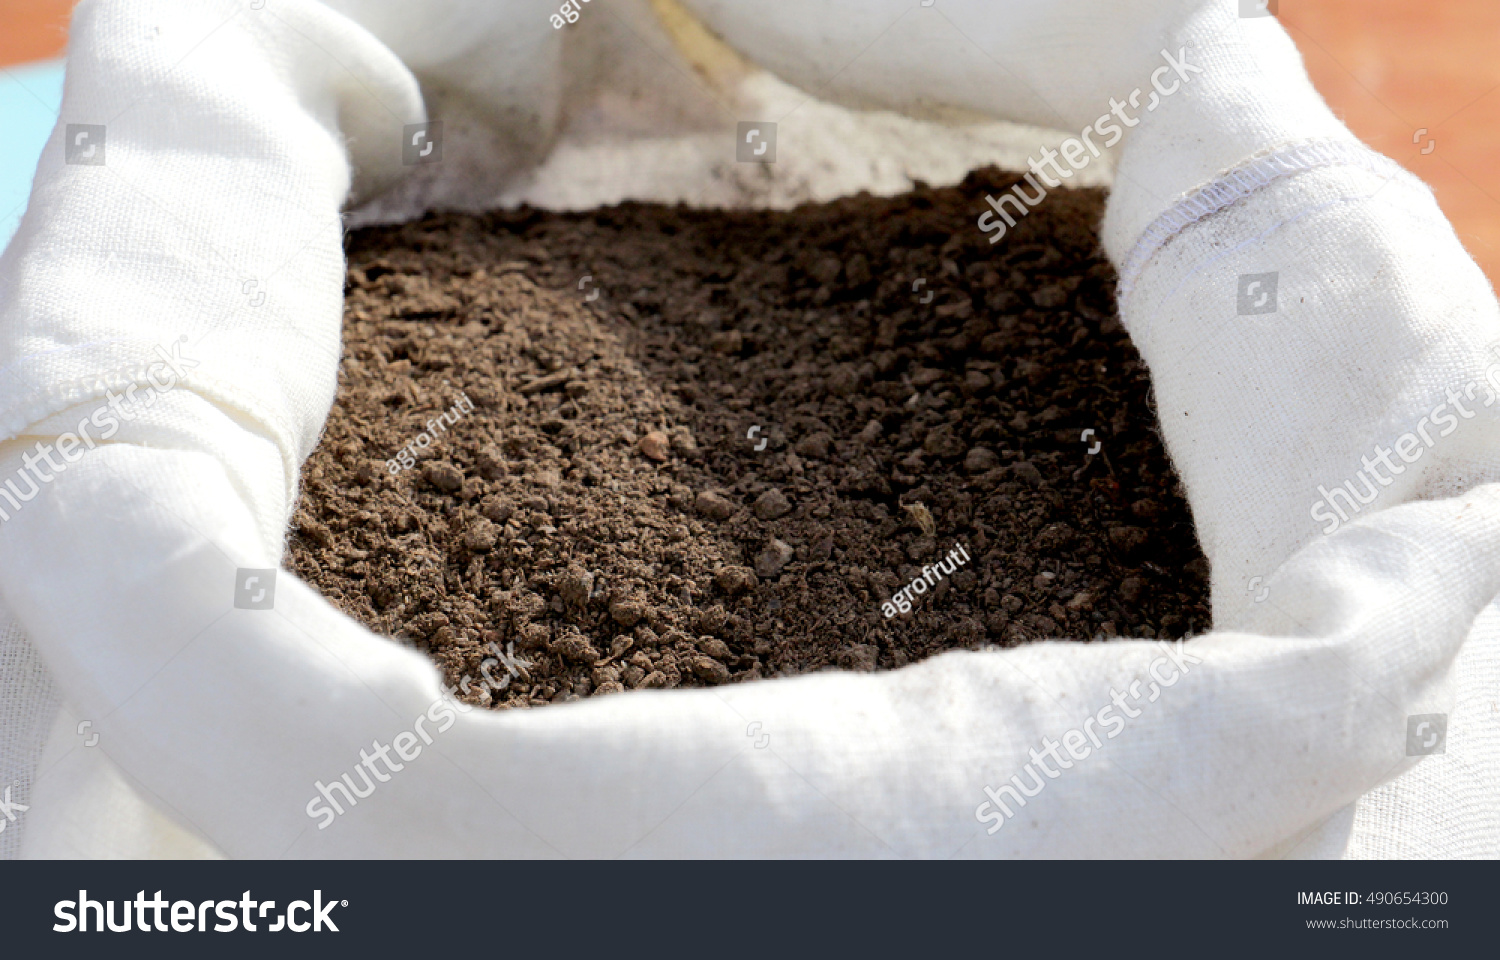 Soil humus in a bag for sale stock photo 490654300 for Soil for sale